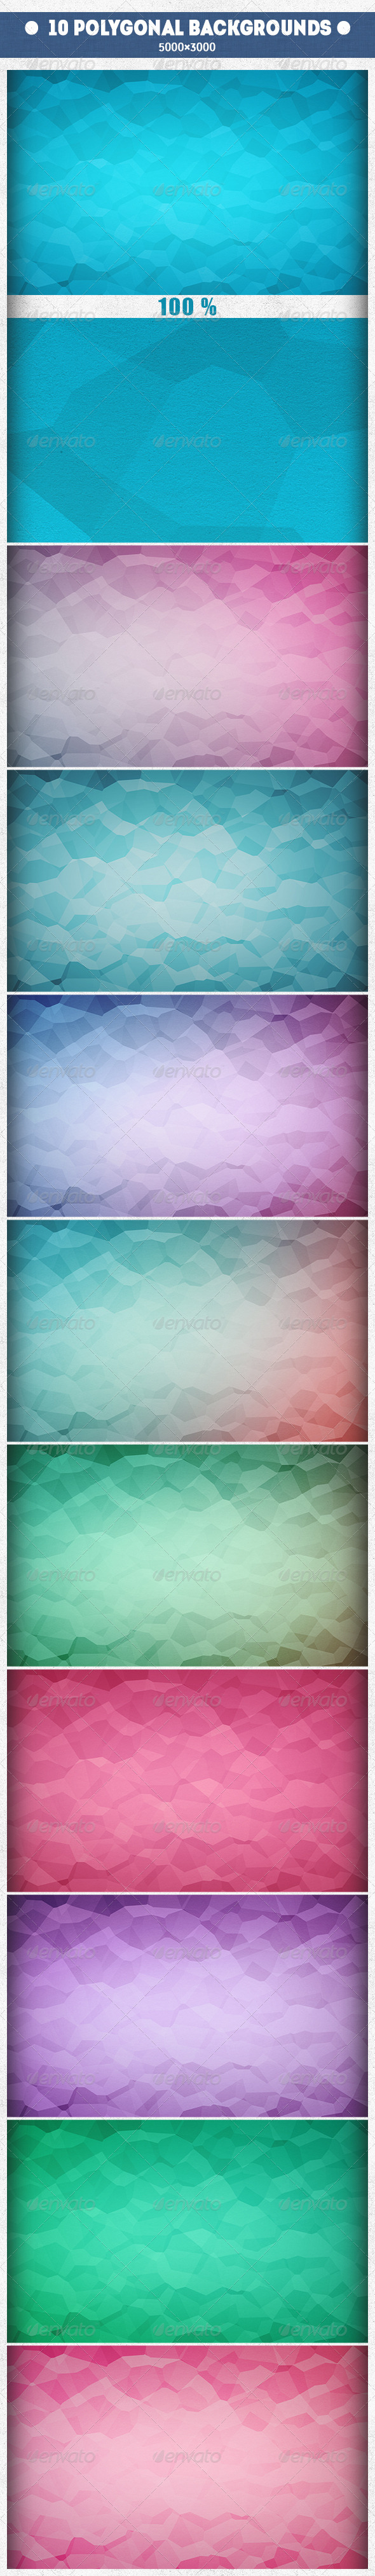 GraphicRiver 10 Triangular Backgrounds 8010102